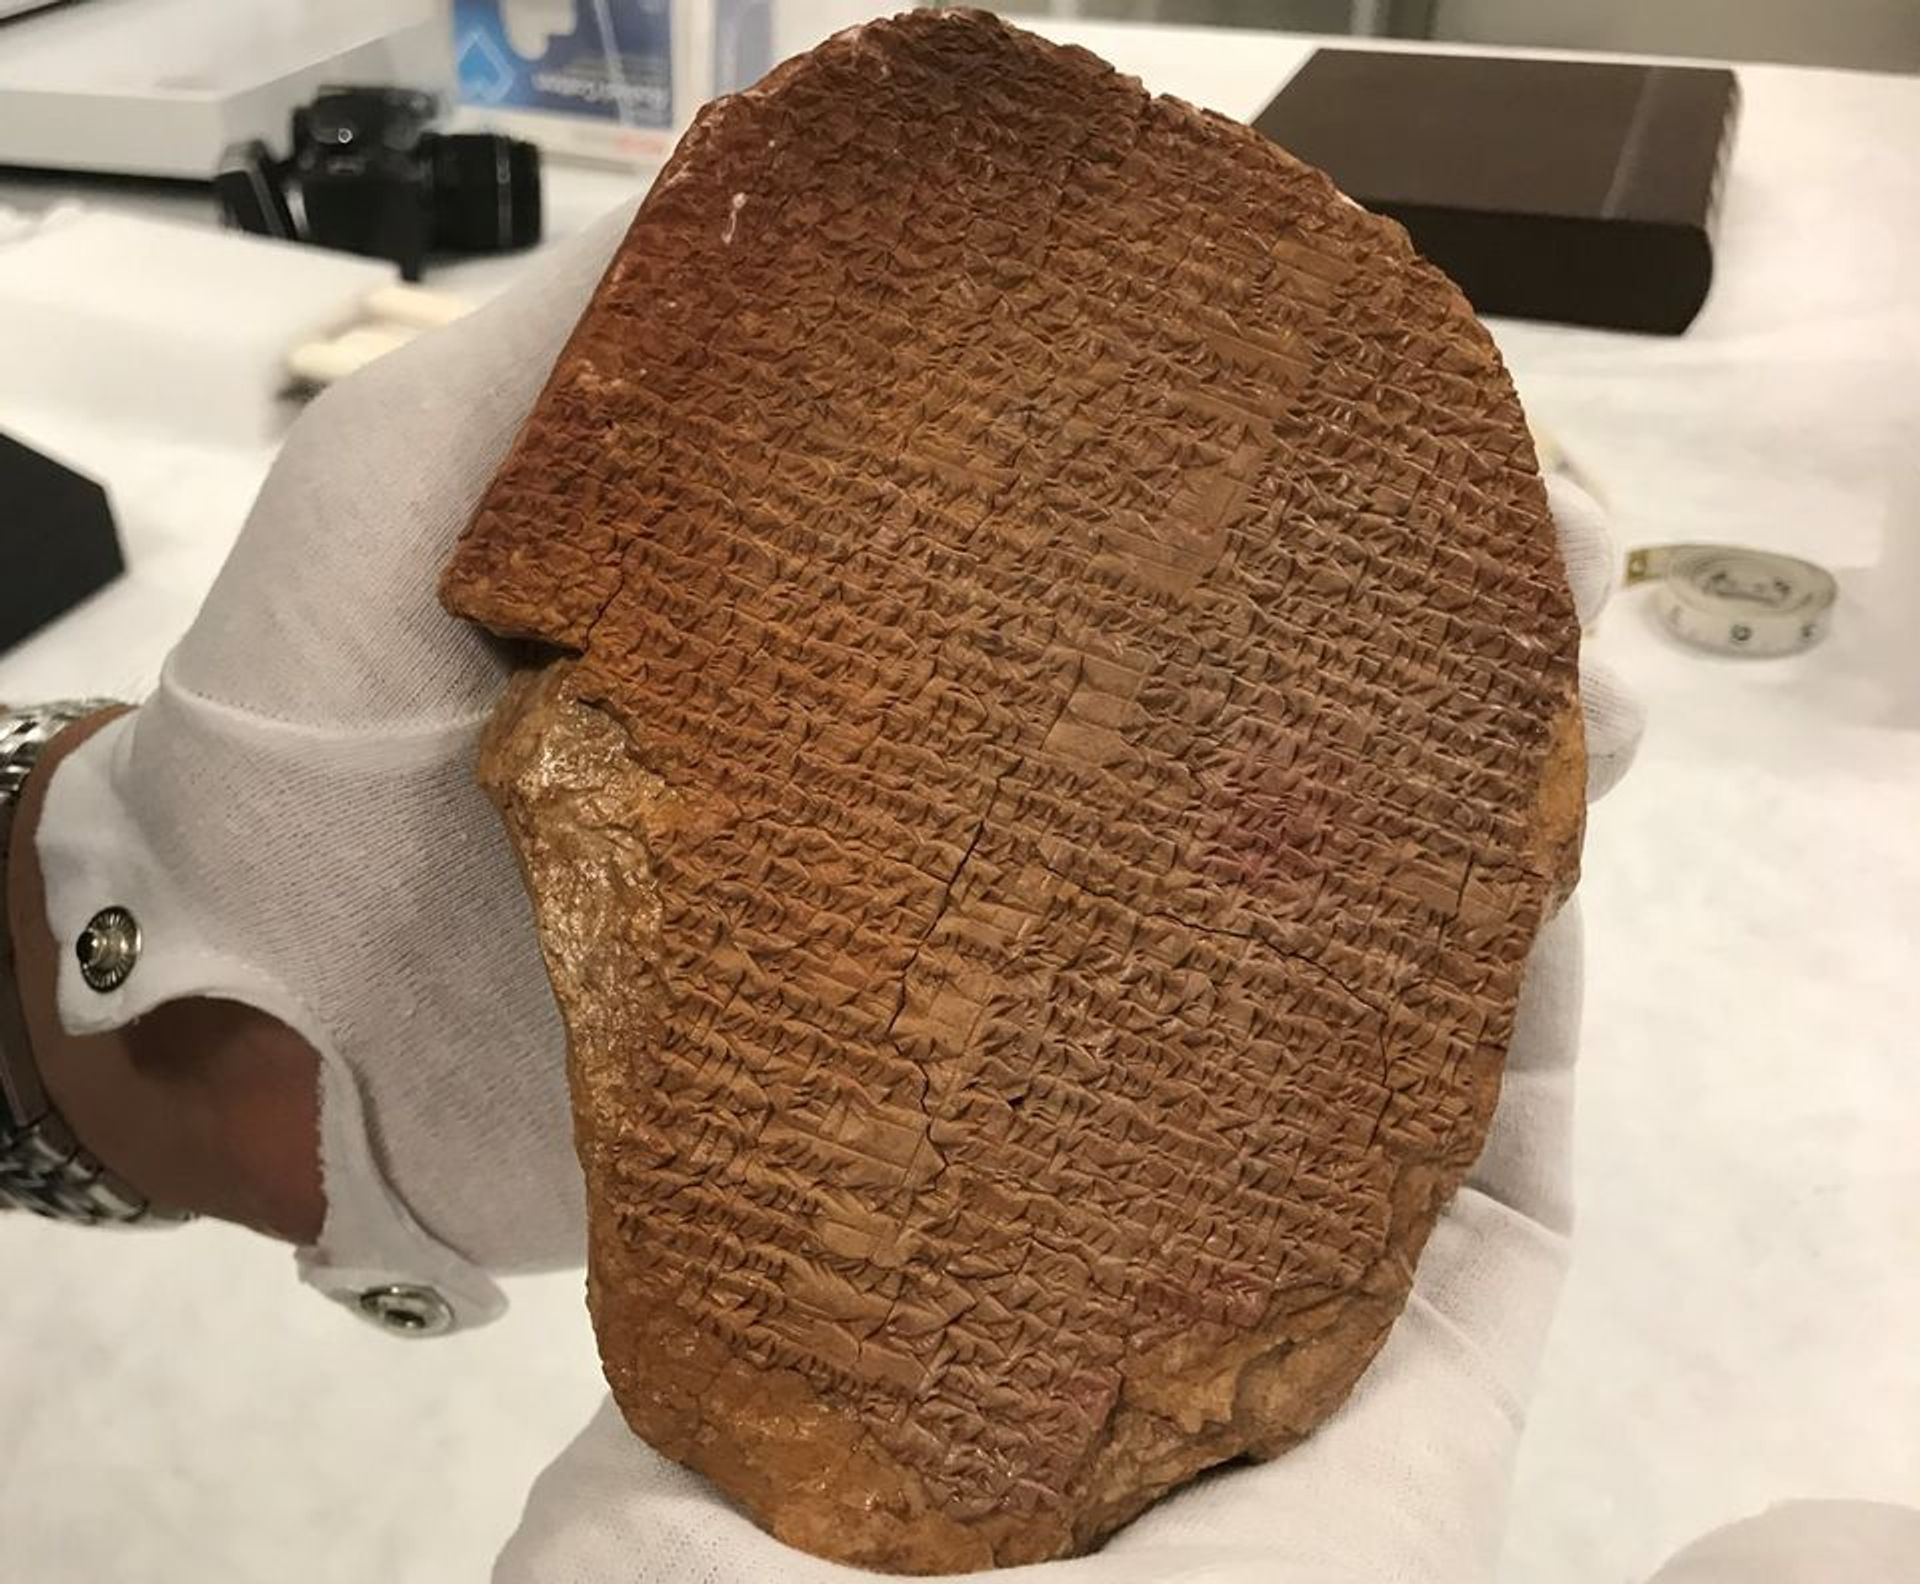 The cuneiform tablet bearing a portion of the epic of Gilgamesh, a Sumerian epic poem Photo: ICE-HSI